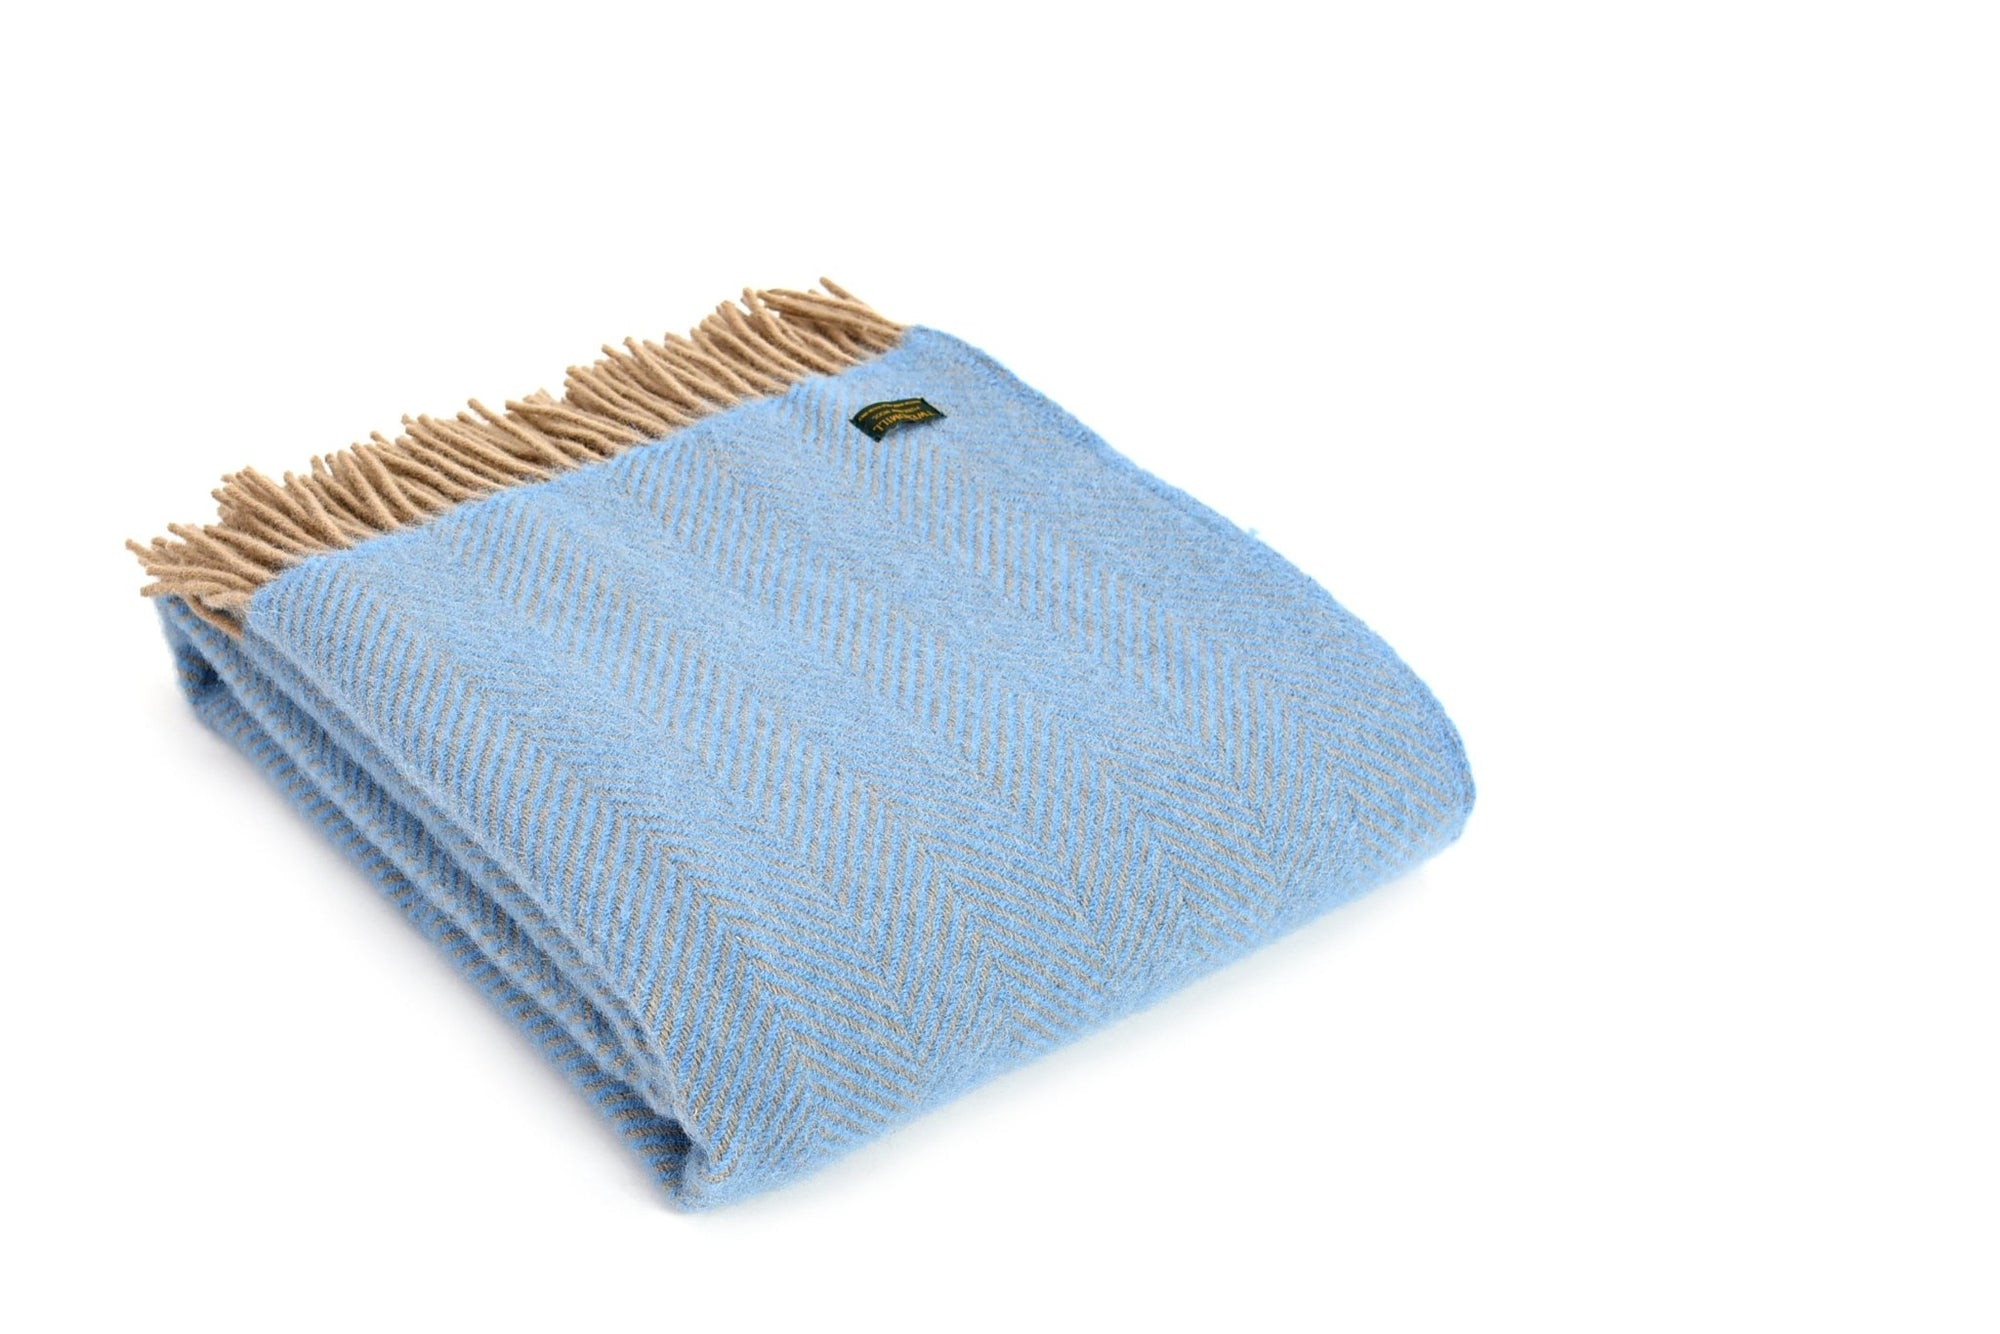 Tweedmill Herringbone Sea Blue & Beige pure wool throw - Urban Wool